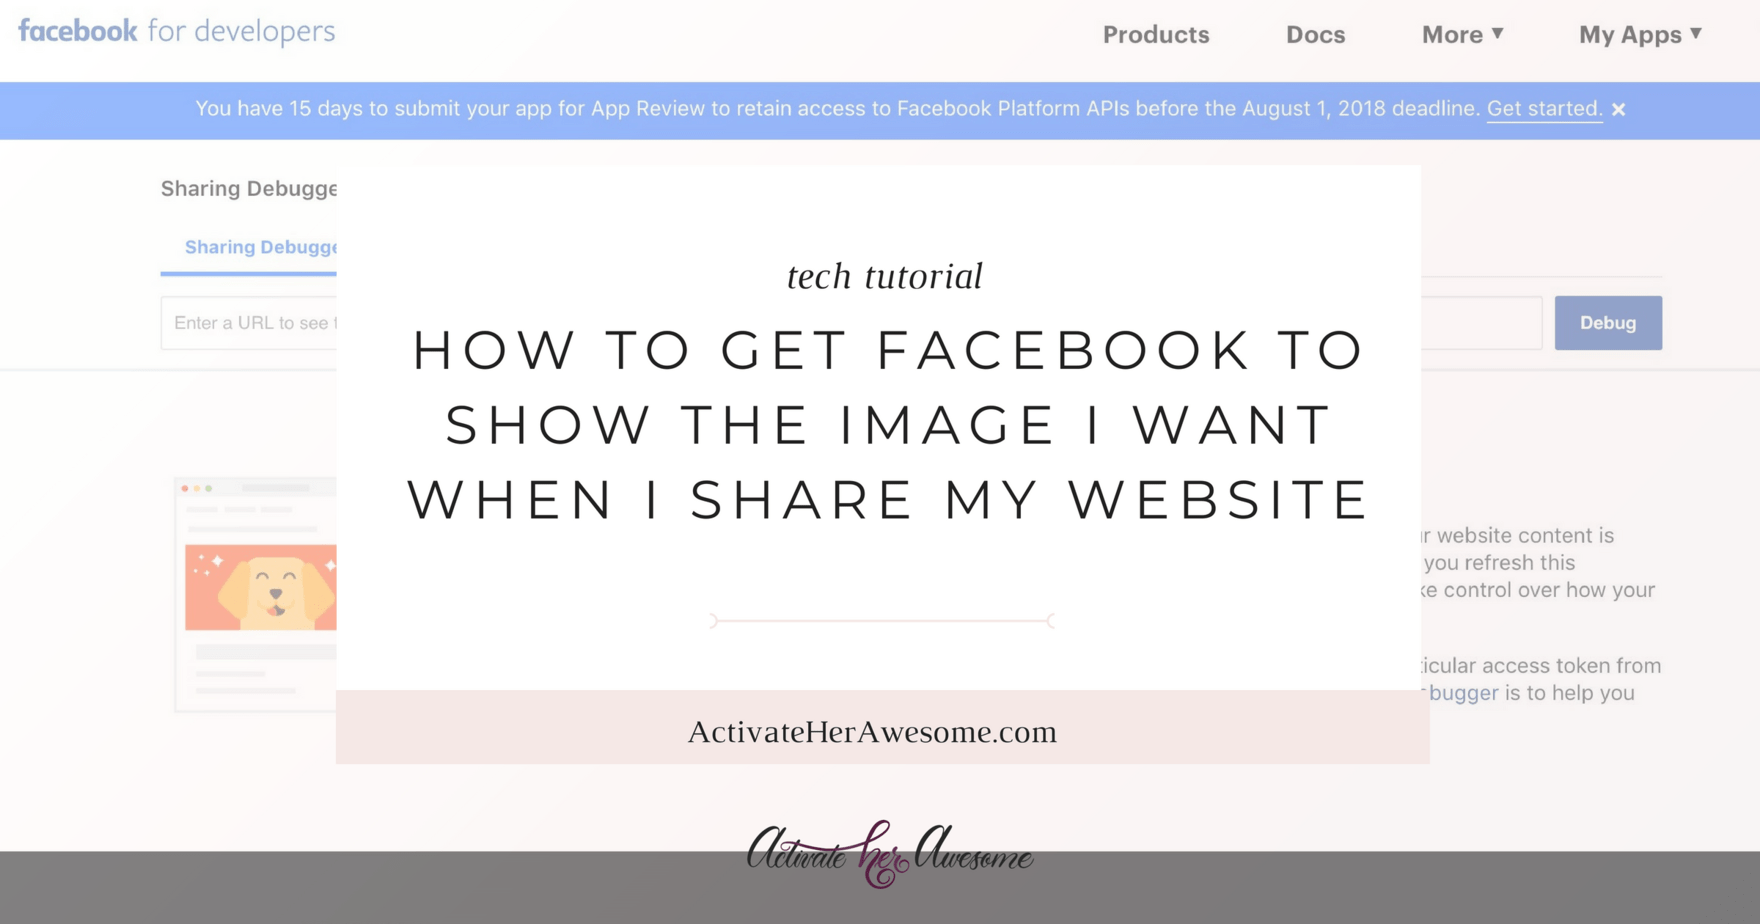 How to Get Facebook To Show a Specific Image | via